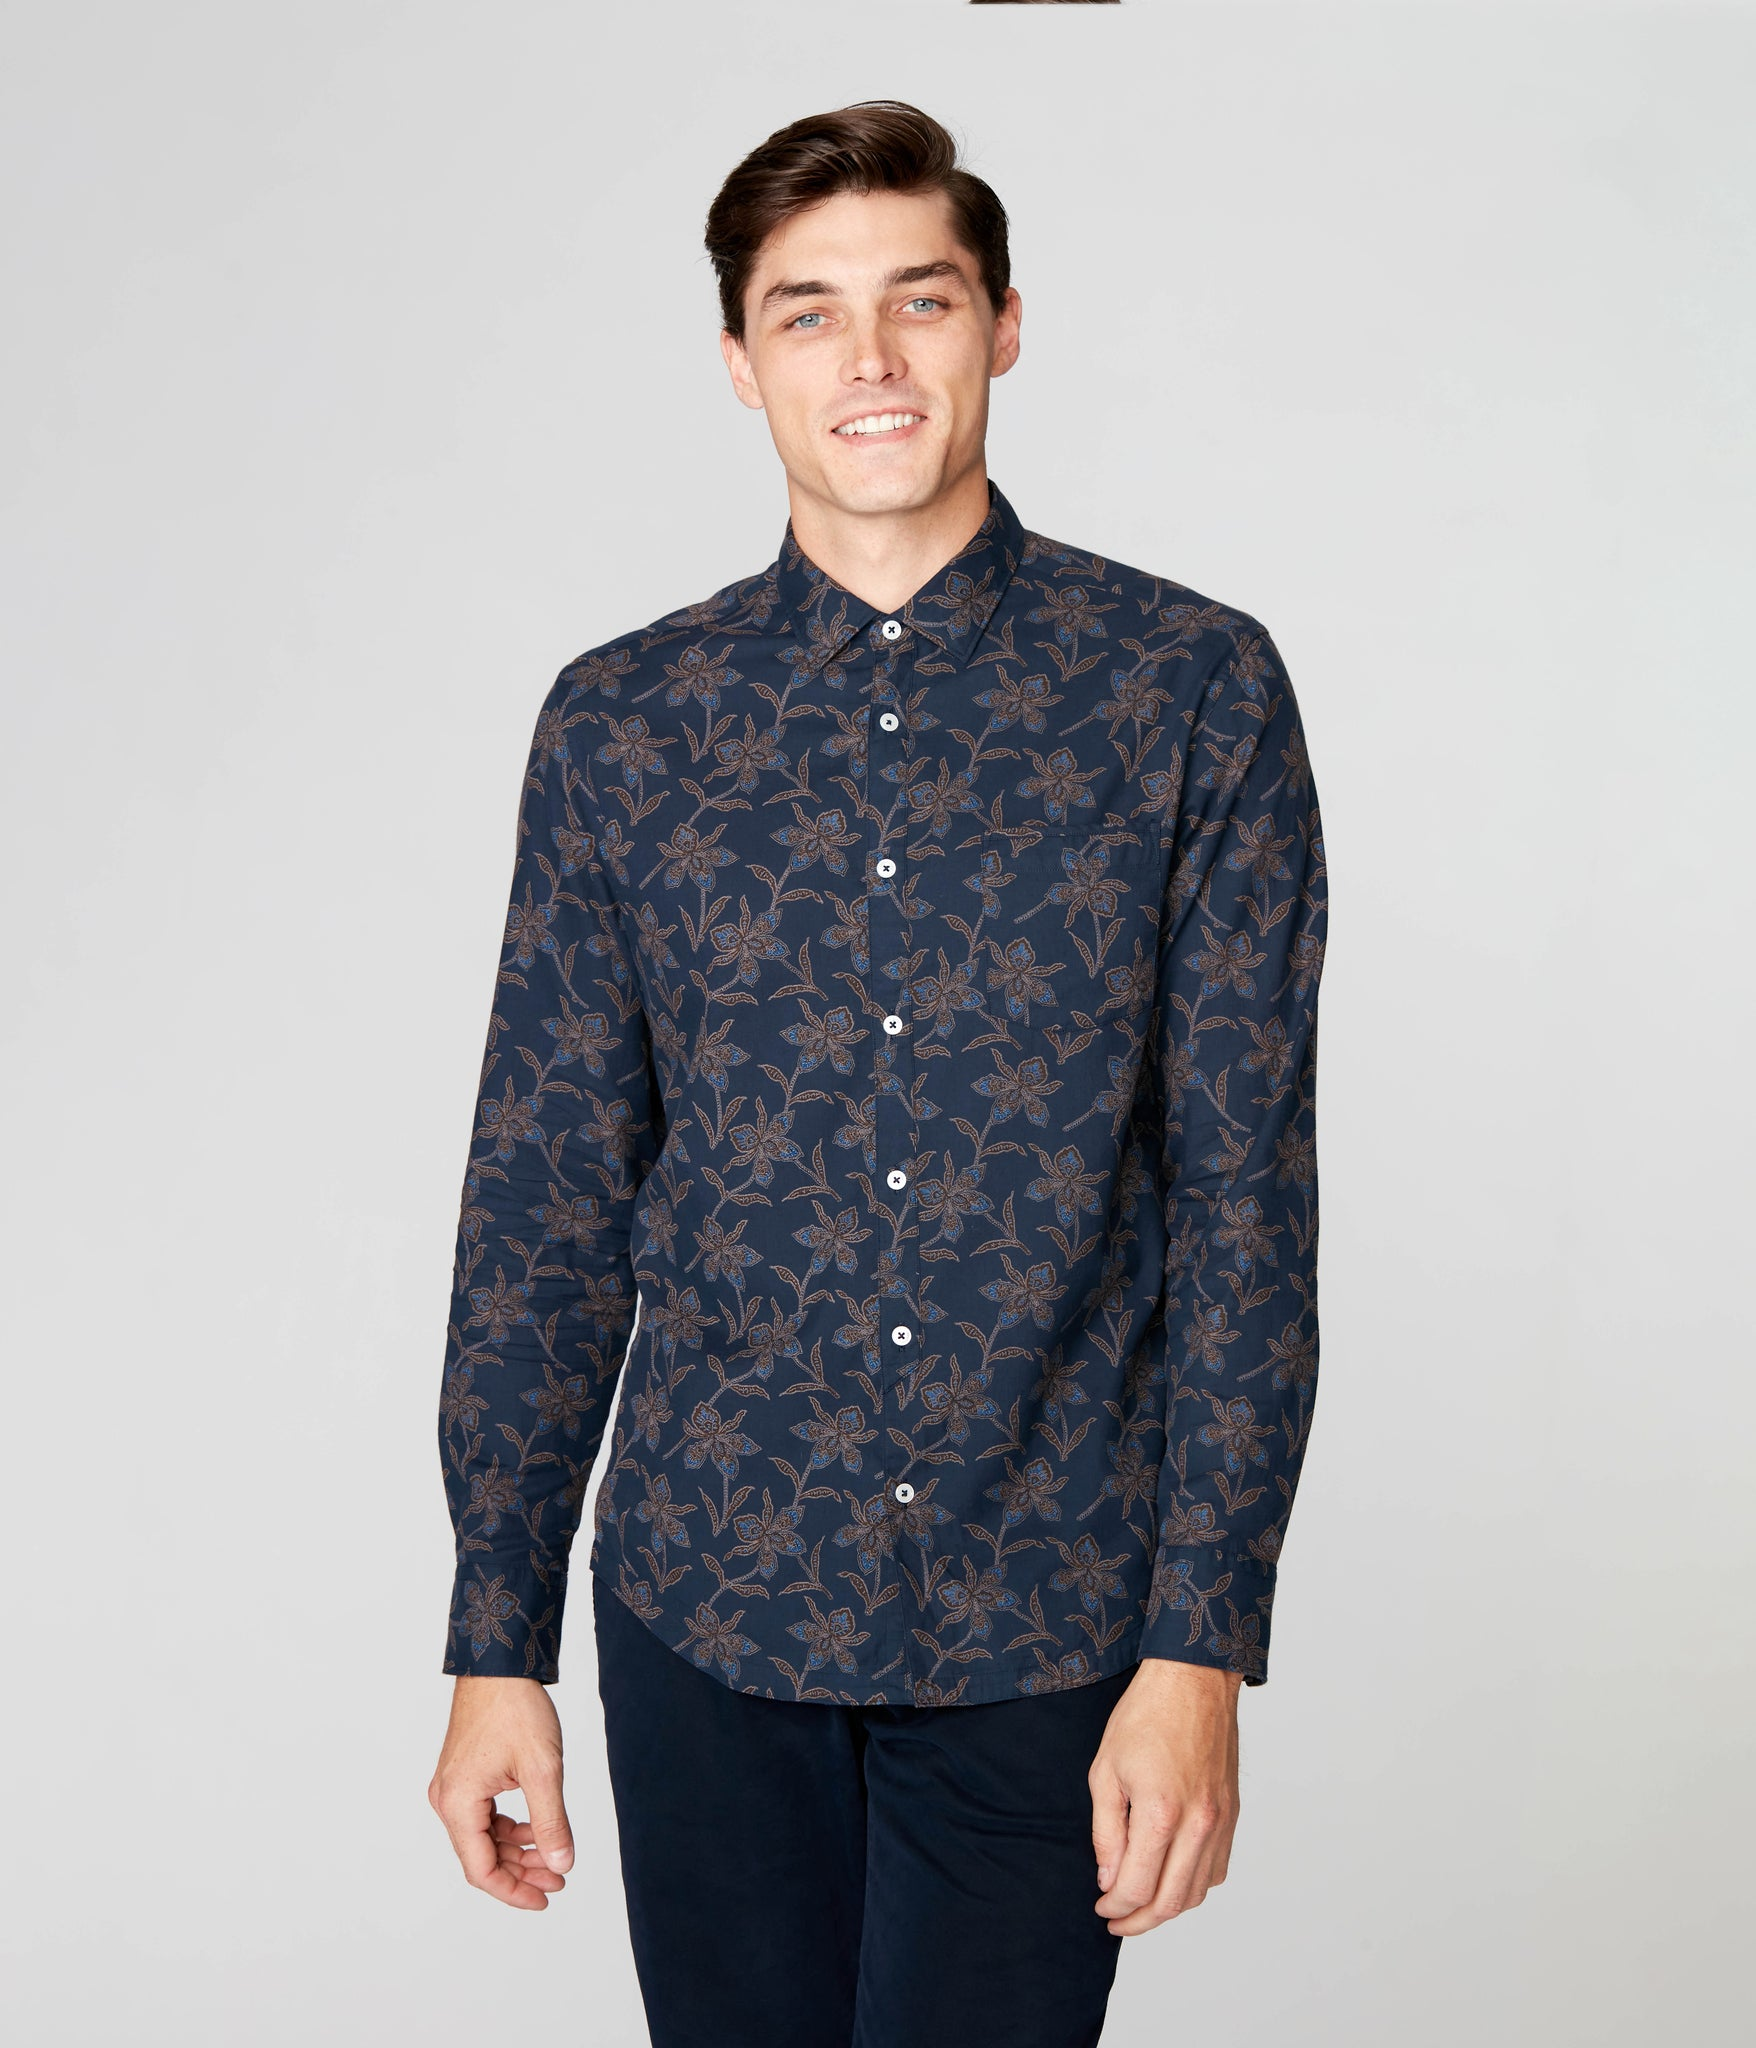 On-Point Print Shirt - Navy Magnolia Floral